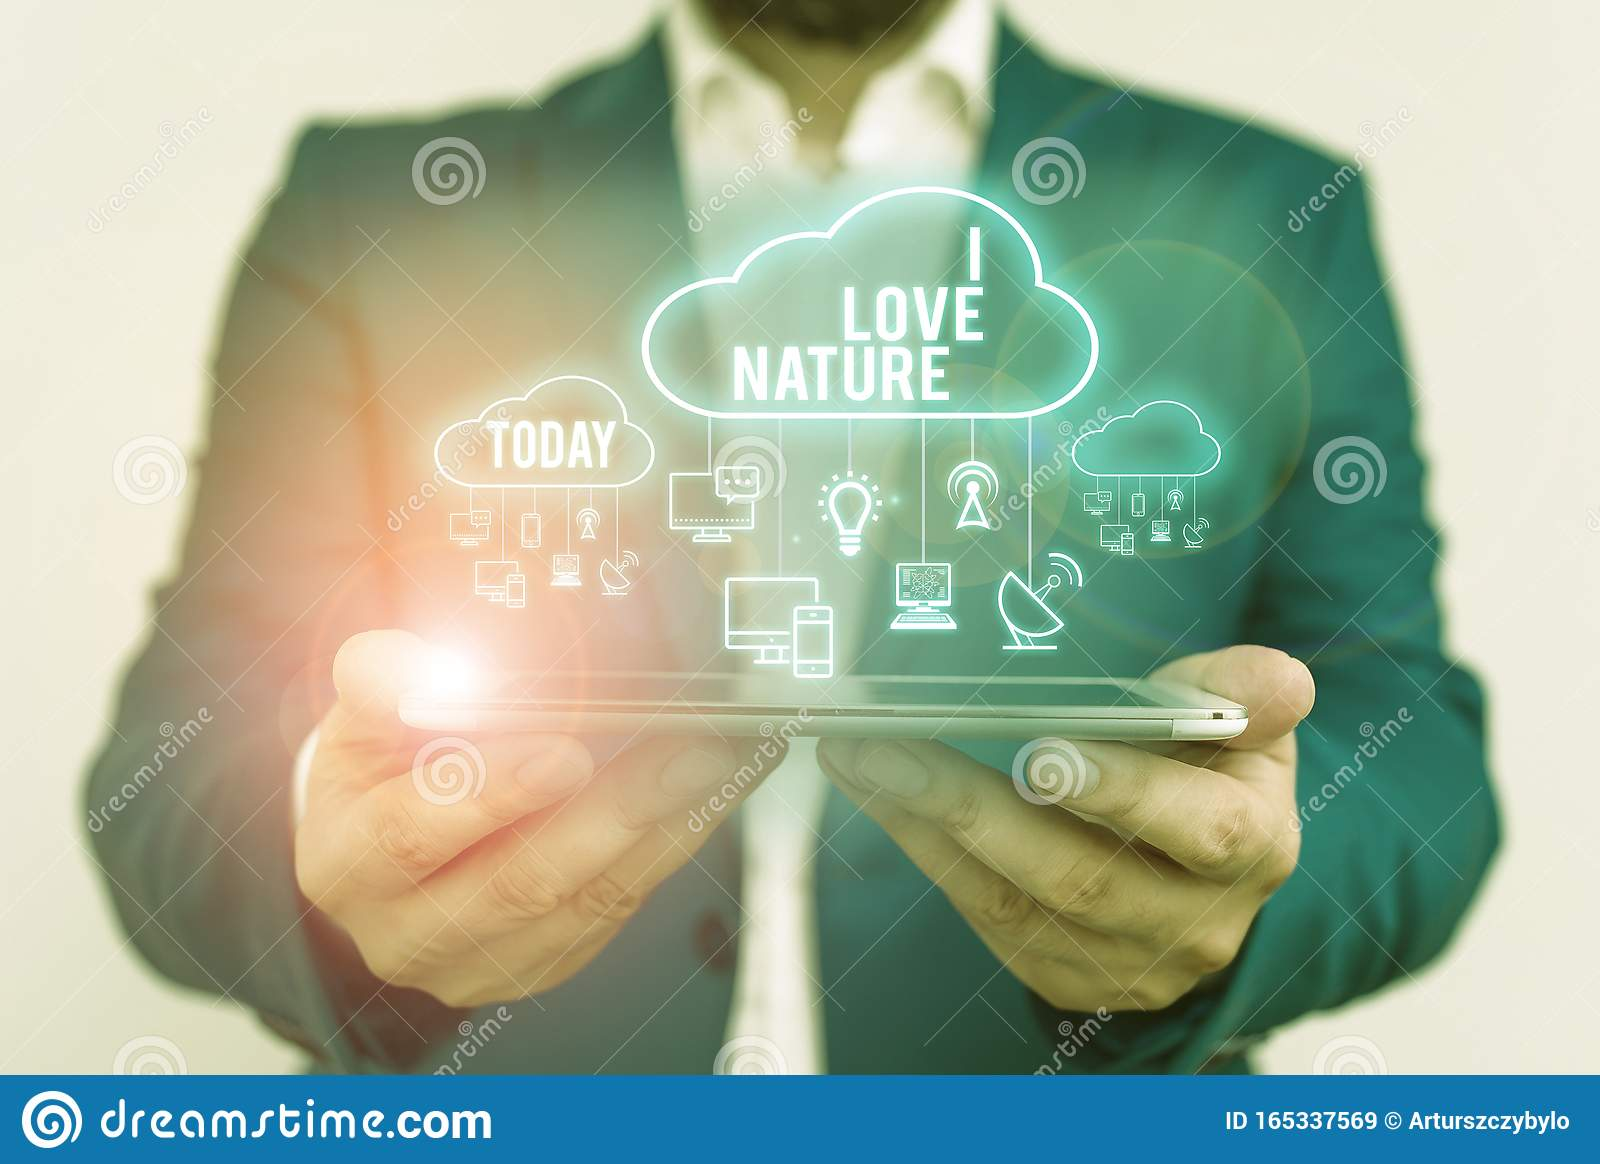 People cut down trees because they have no power to run electric stoves, etc. Handwriting Text I Love Nature Concept Meaning Enjoy The Natural Environment Preservation Protect Ecosystem Stock Image Image Of Field Forestation 165337569